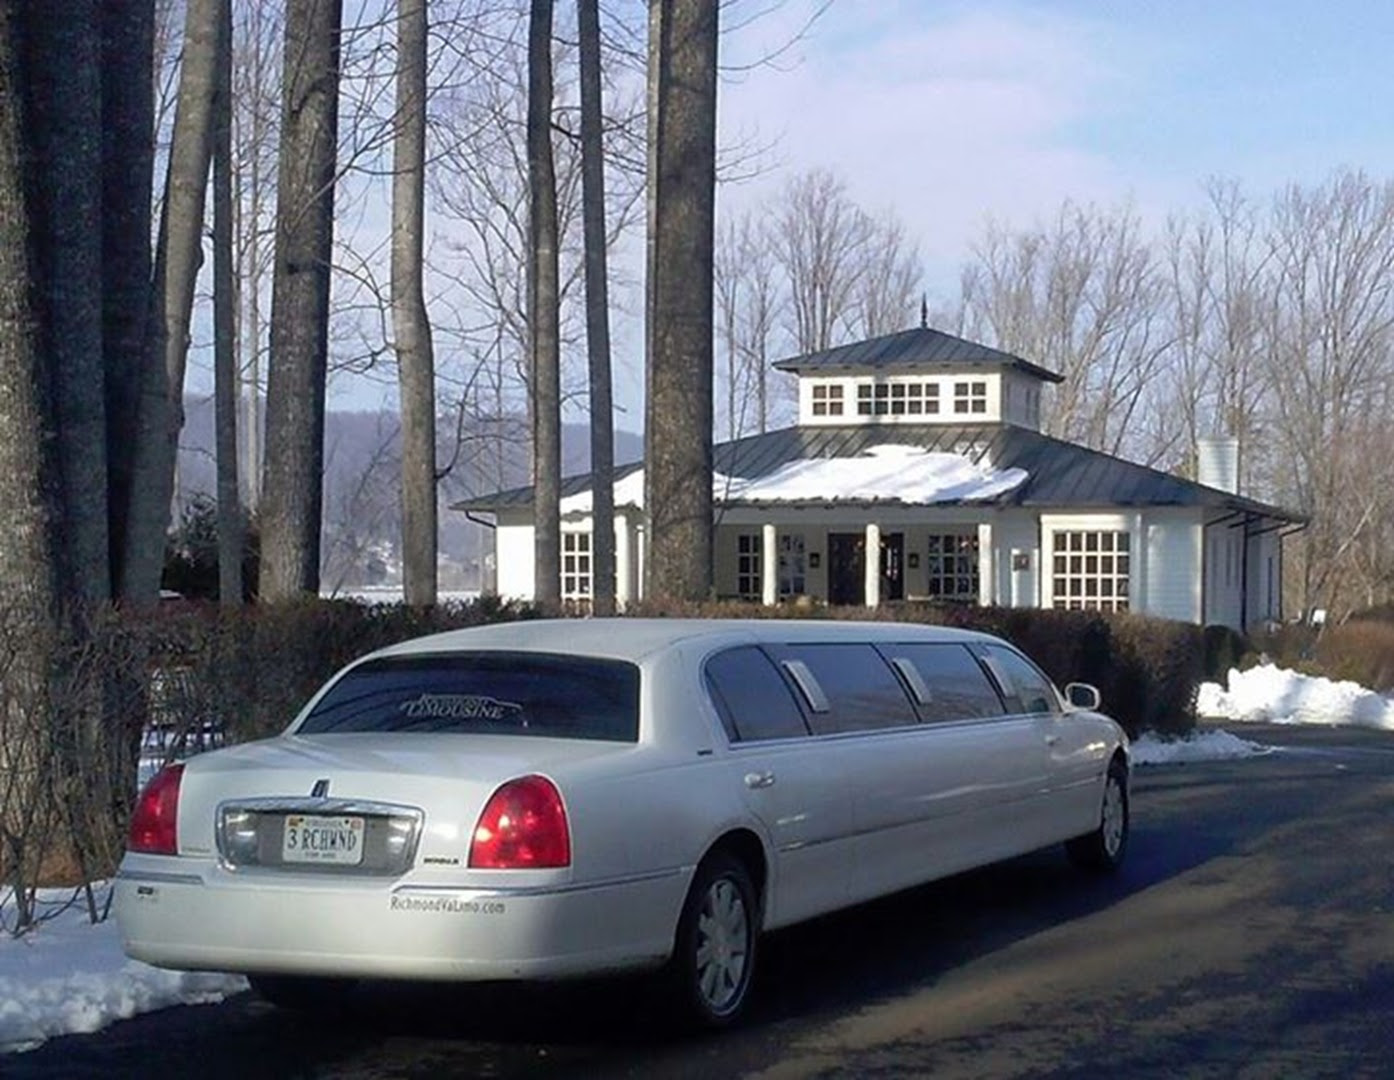 Winery Brewery Tours Virginias 1 Wine Tour Limo Company